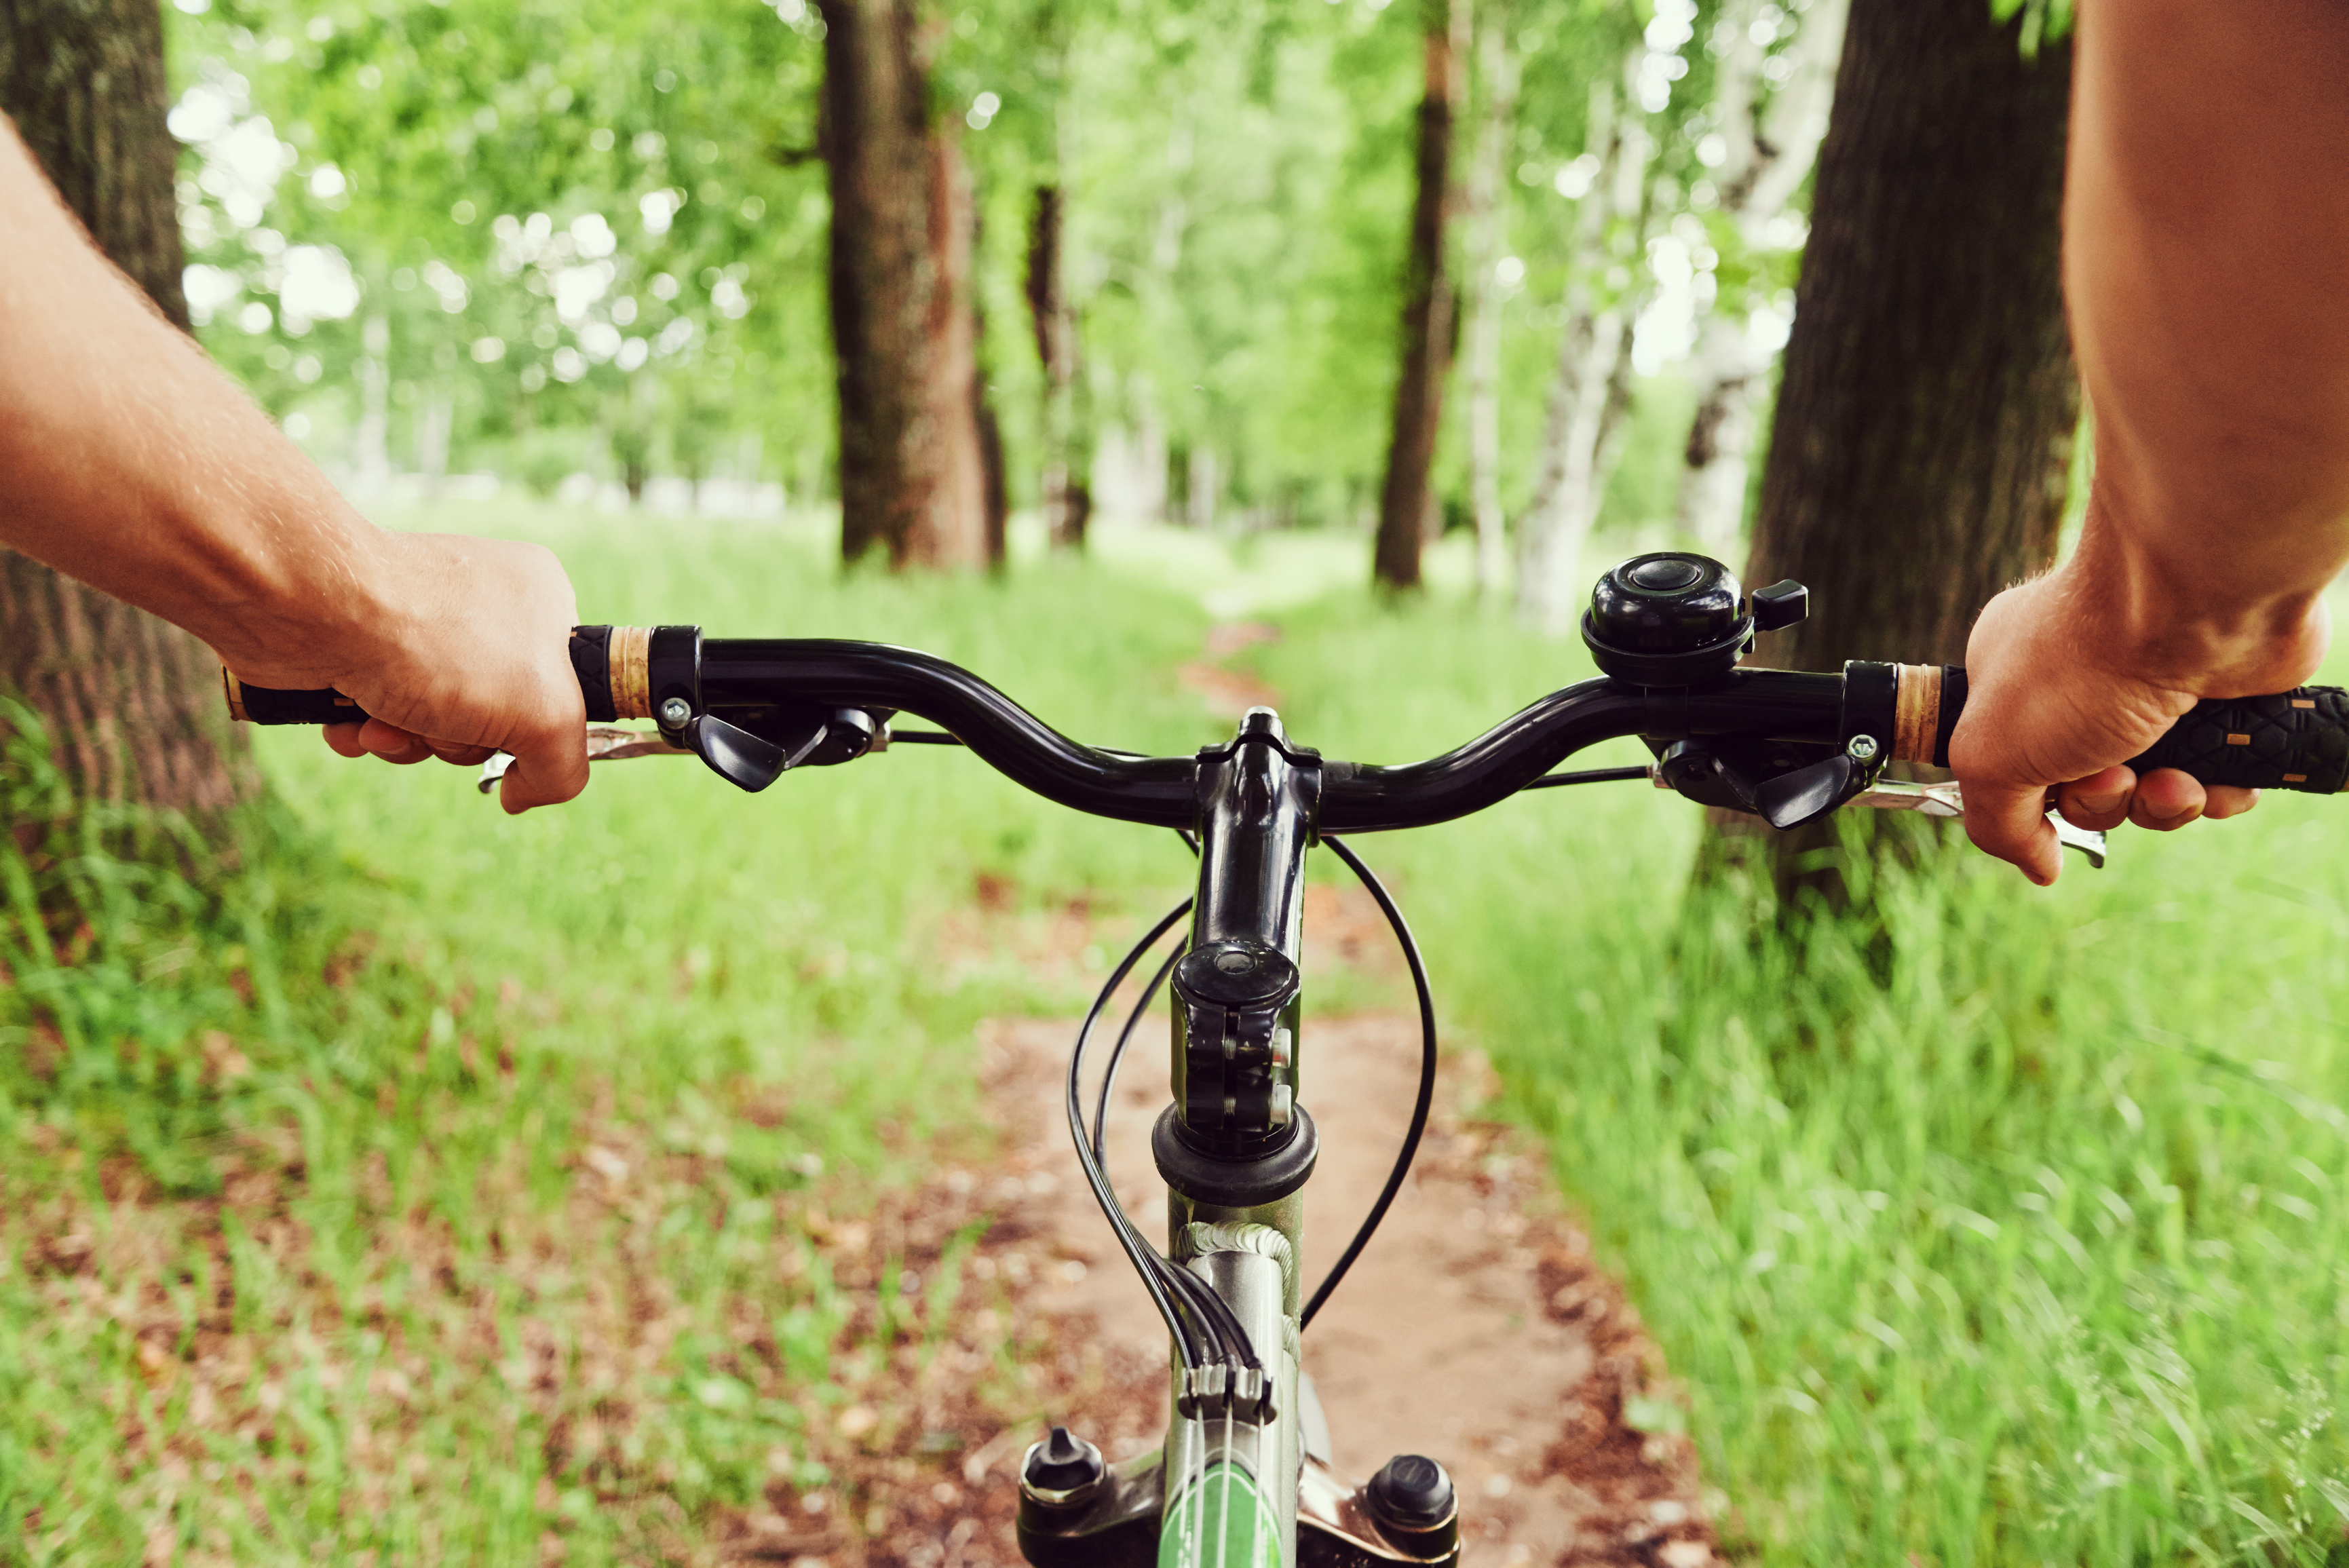 Close-up image of cyclist man hands on handlebar riding mountain bike on trail in summer park, face is not visible